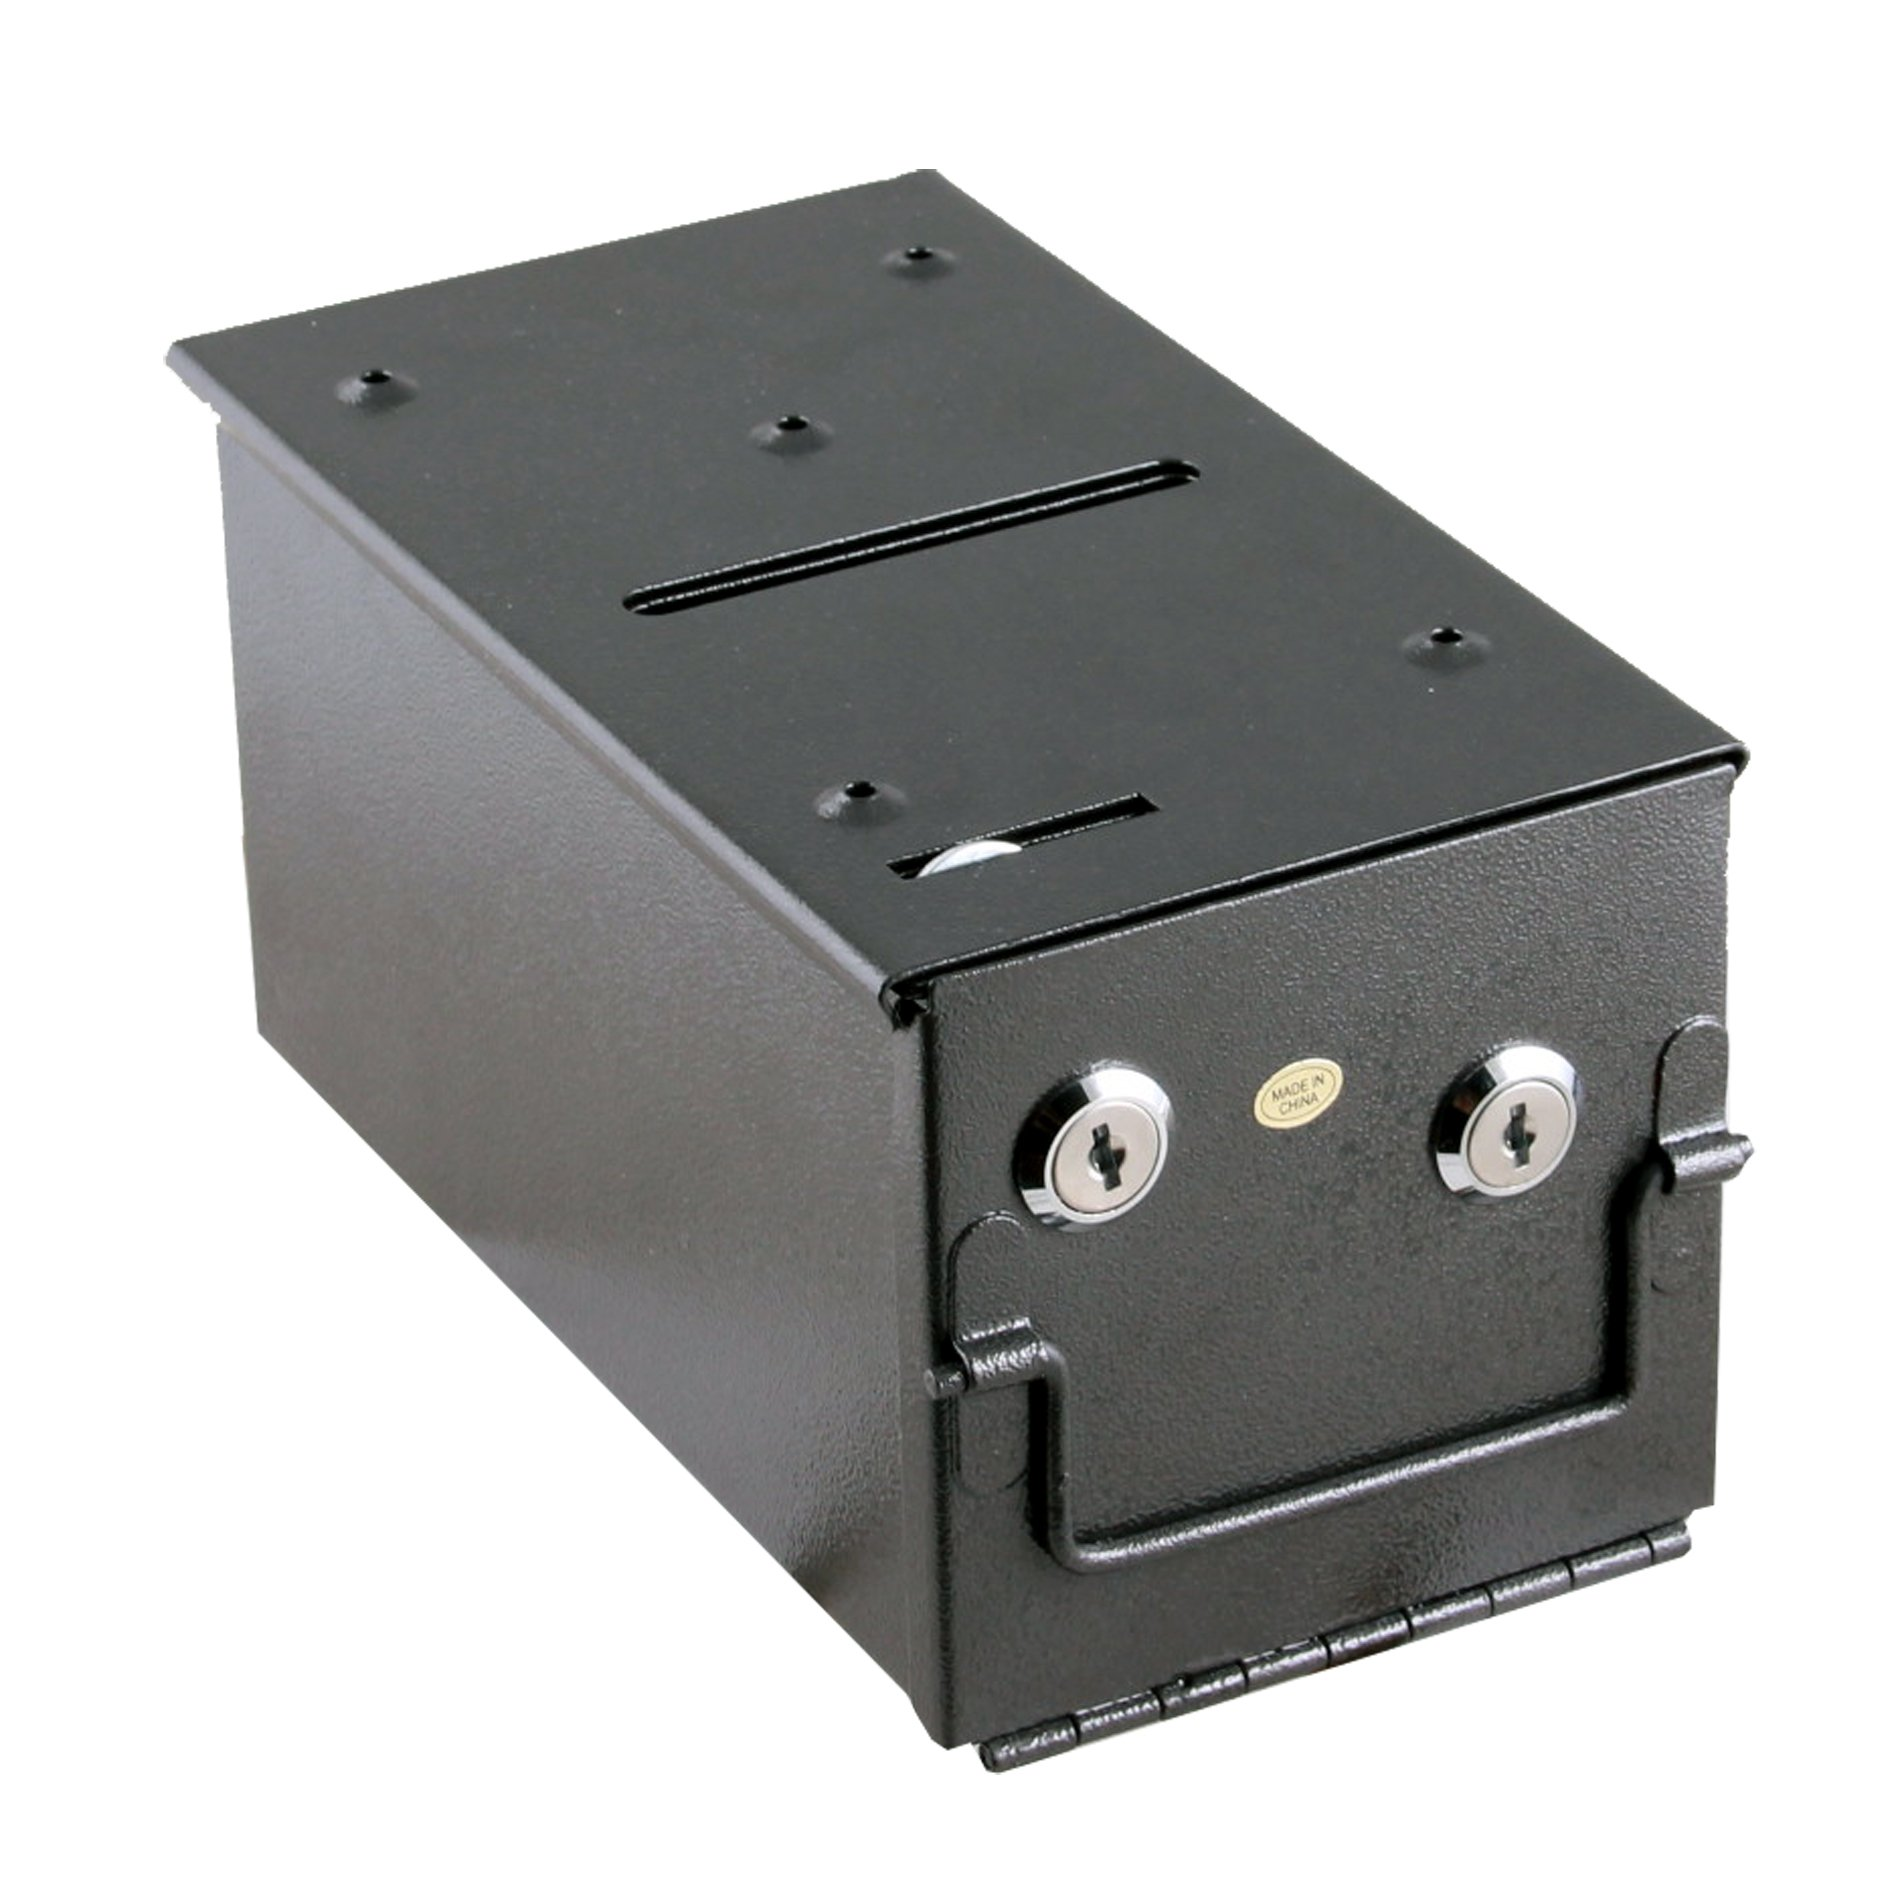 IDS Steel Rake Toke Drop Box with Bill Slot For Poker Table